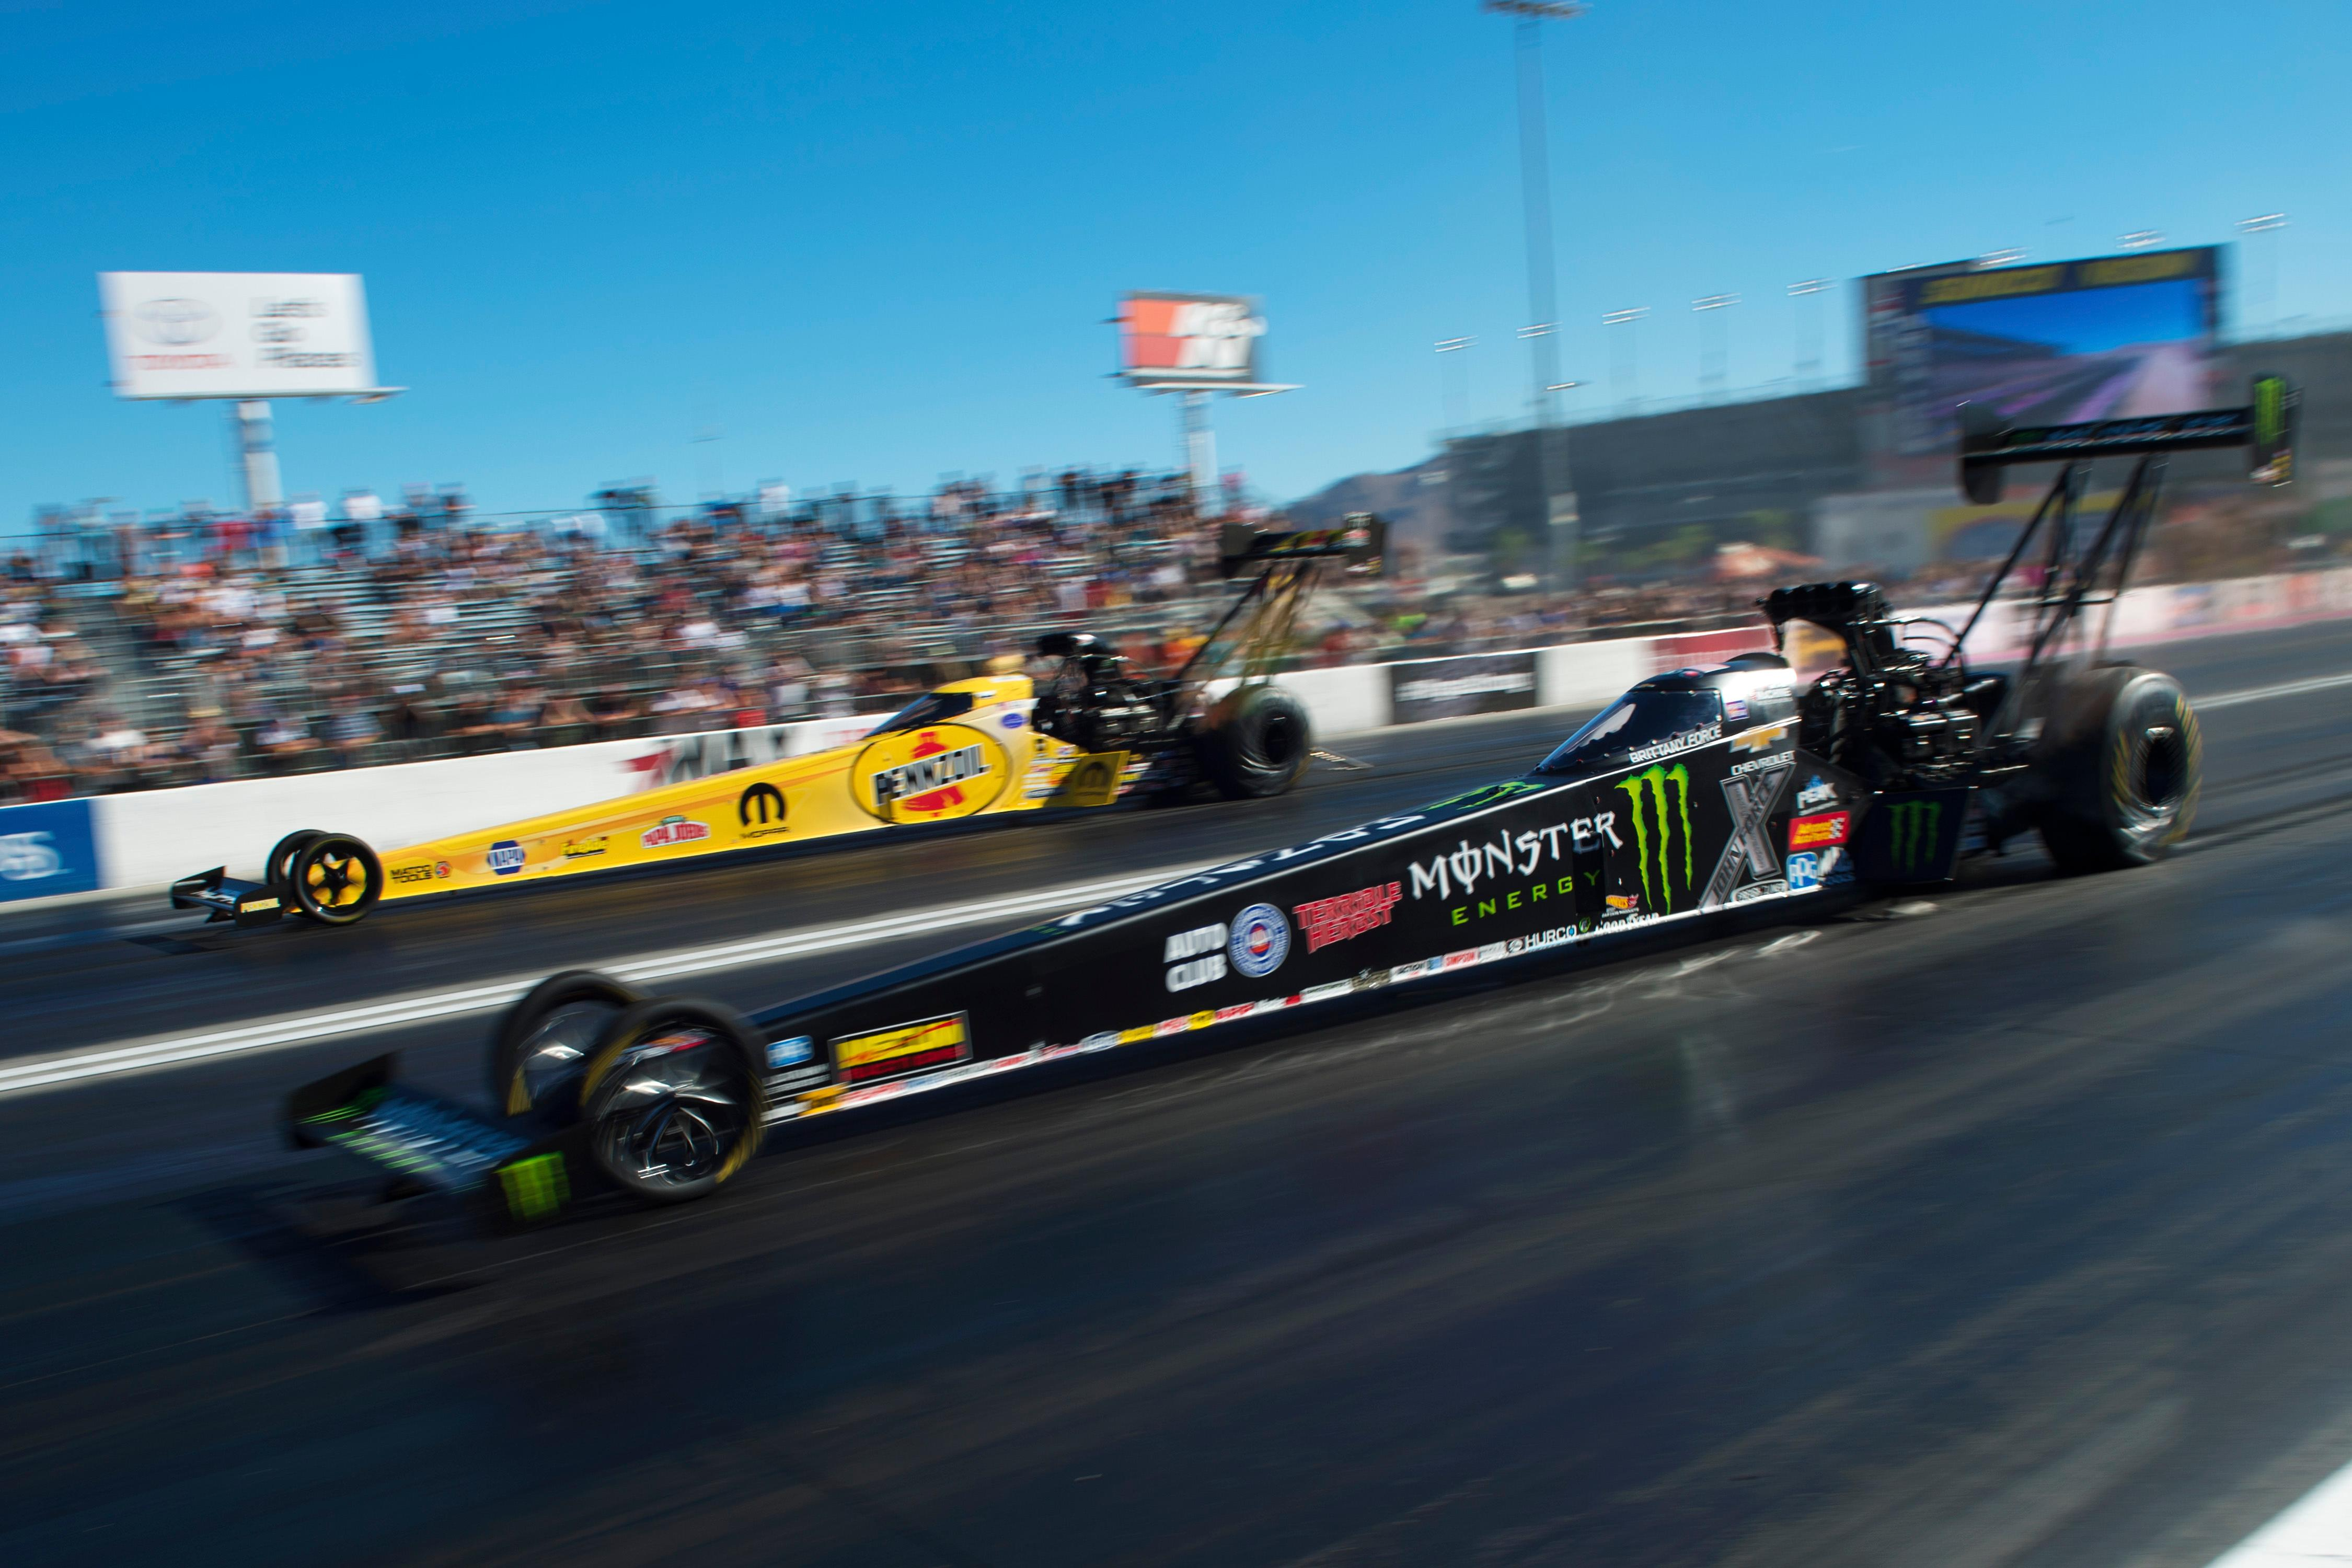 Top Fuel drivers Leah Pritchett, top, and Brittany Force face off during the NHRA Toyota Nationals Sunday, October 29, 2017, at The Strip at the Las Vegas Motor Speedway. CREDIT: Sam Morris/Las Vegas News Bureau